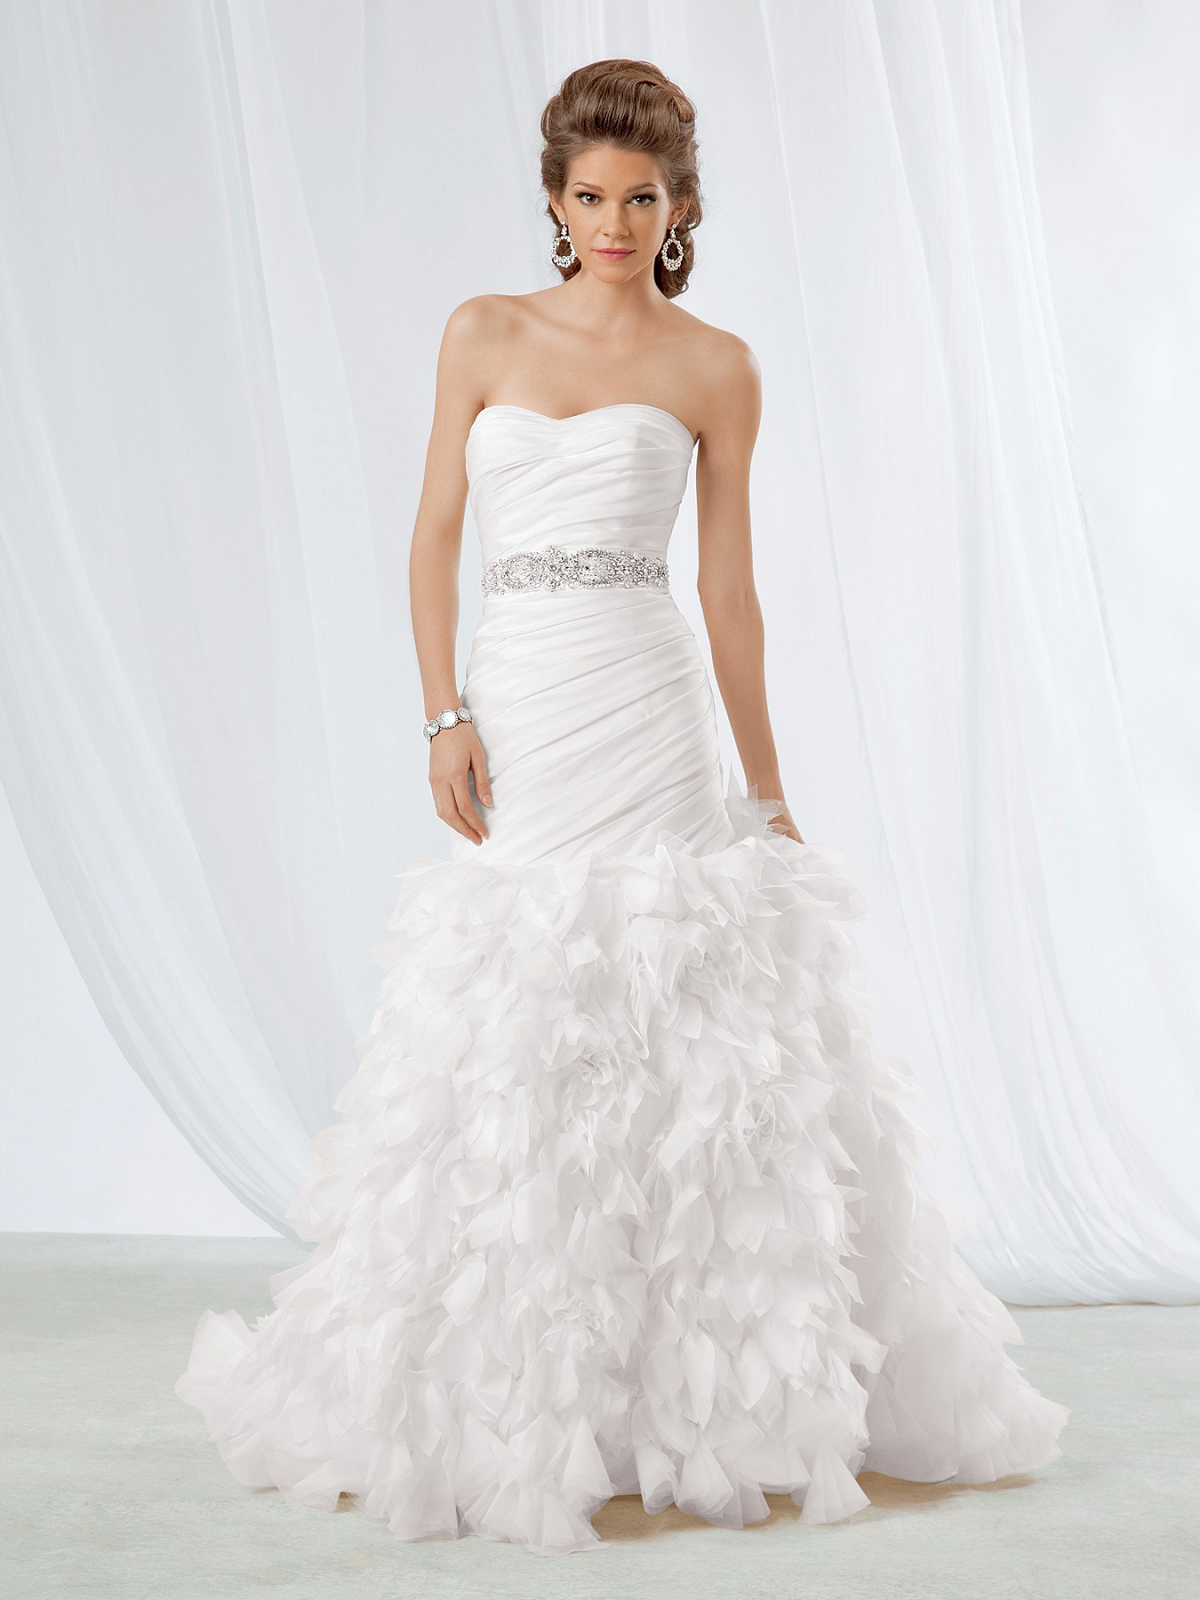 The Reflections by Jordan 2013 Spring Bridal Collection - World of ...